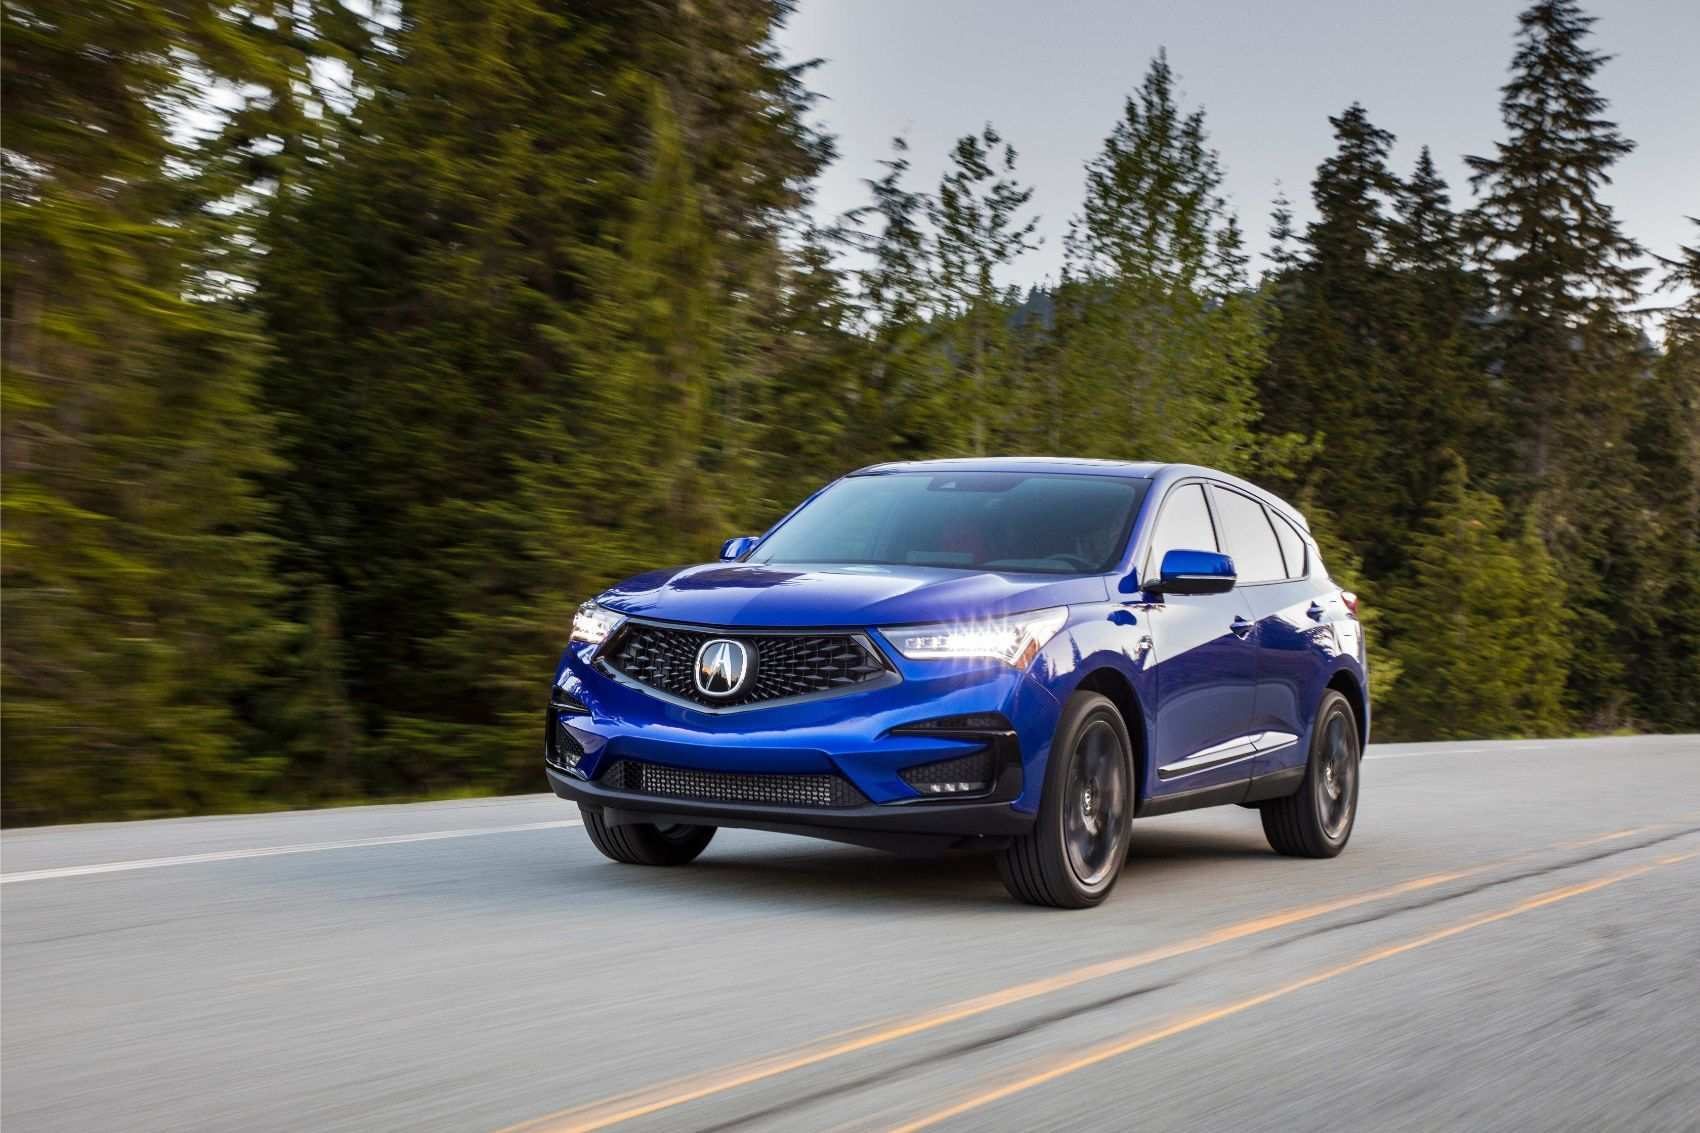 59 Concept of Acura Rdx 2020 Review Performance and New Engine for Acura Rdx 2020 Review